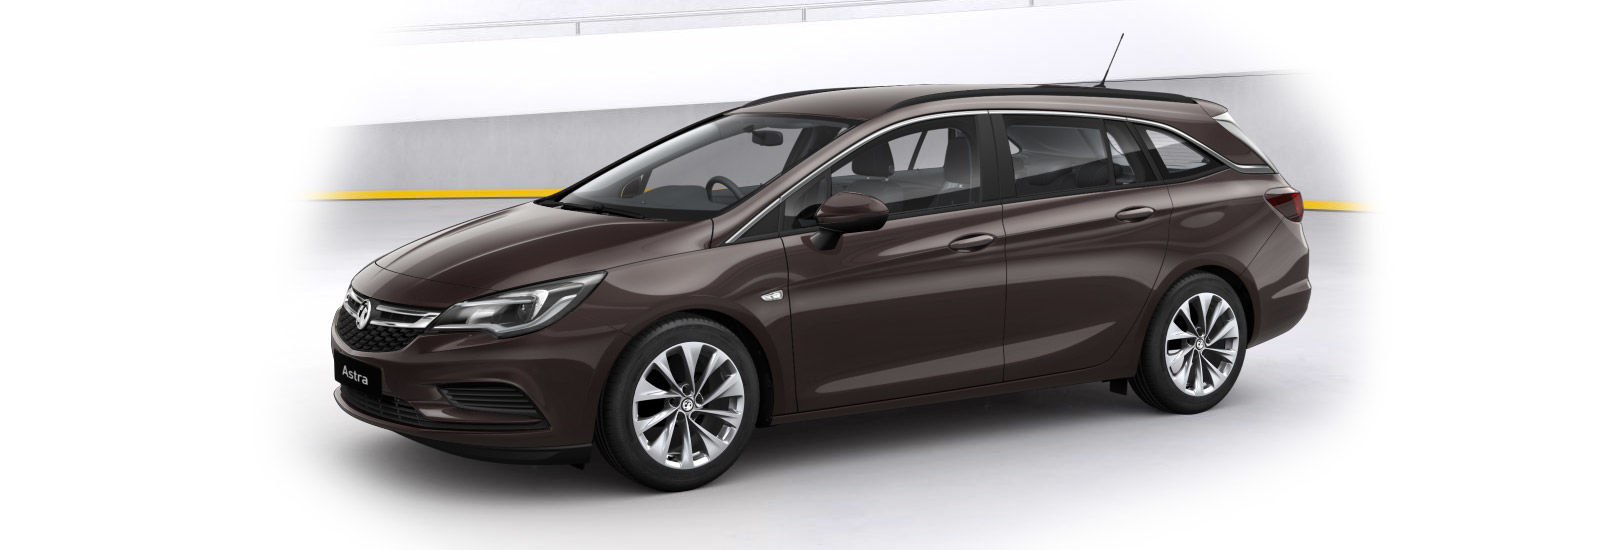 Opel Astra Royal Blue 2017 >> Vauxhall Astra & Astra estate colours & prices   carwow